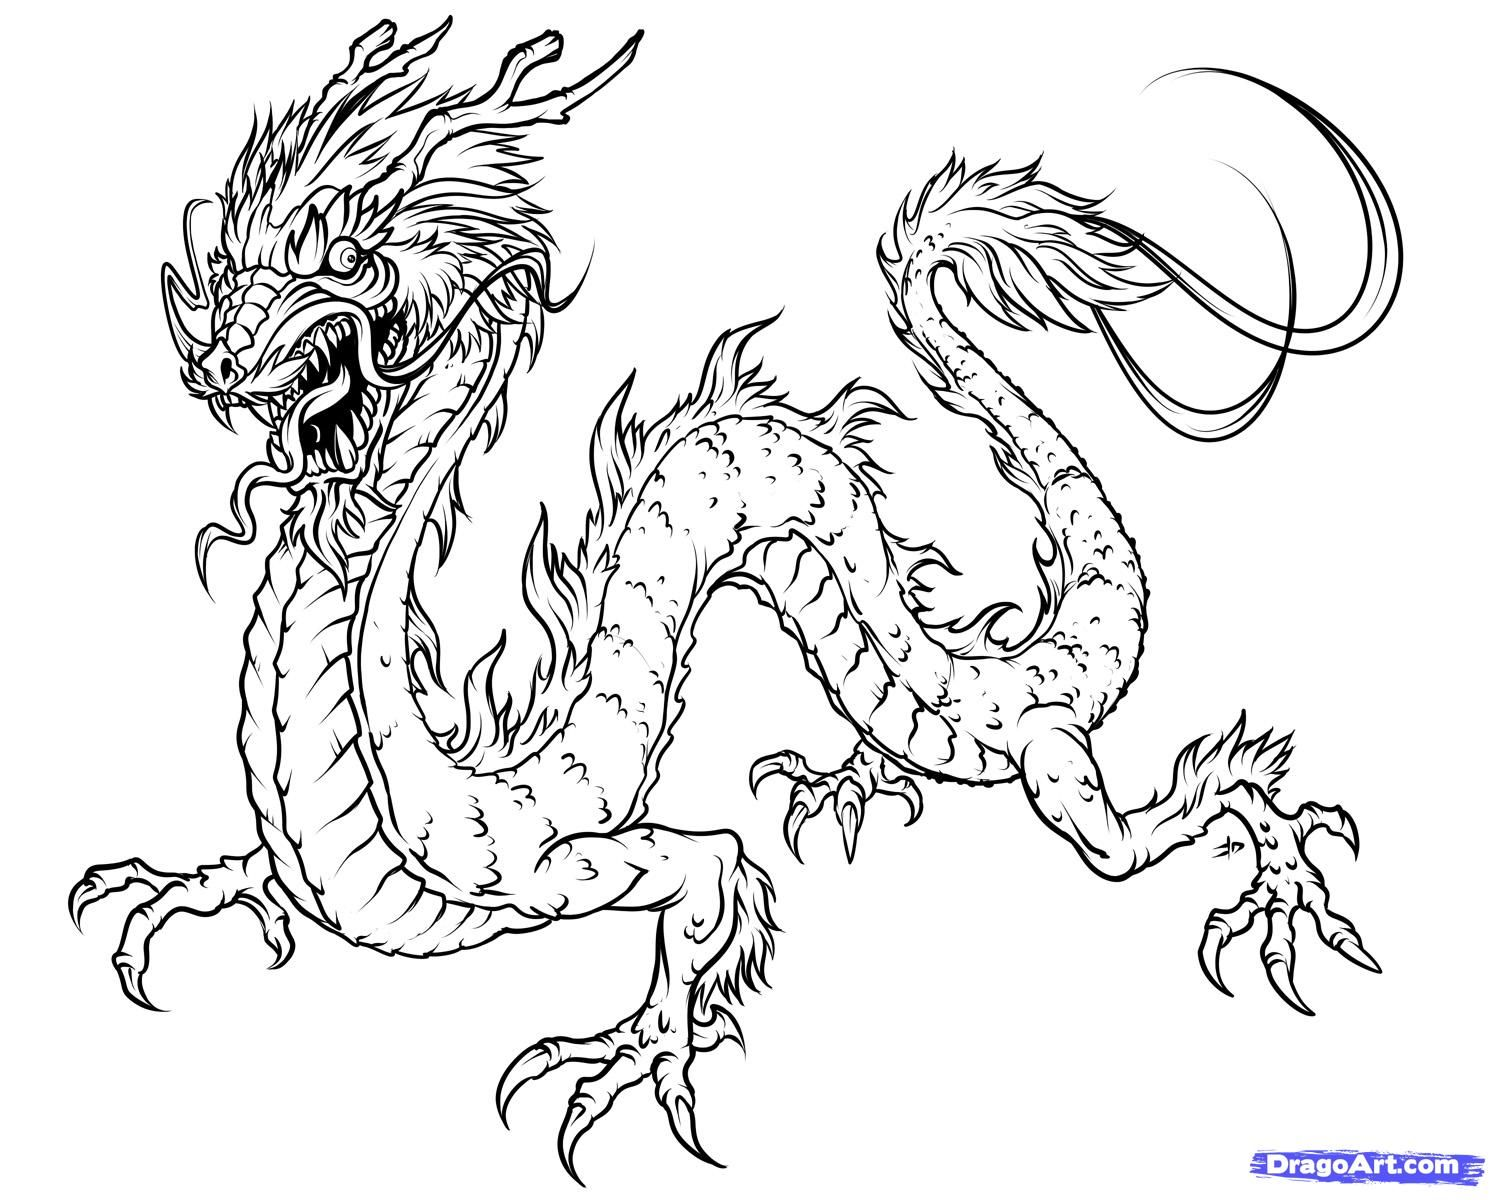 How to draw a Japanese Dragon | DIY | Pinterest | Arte